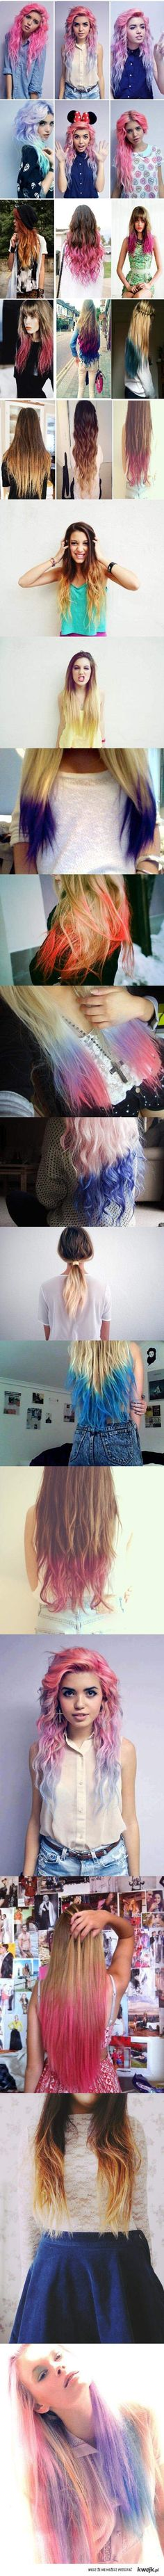 Ombre hair styles LOVE I'm obsessed